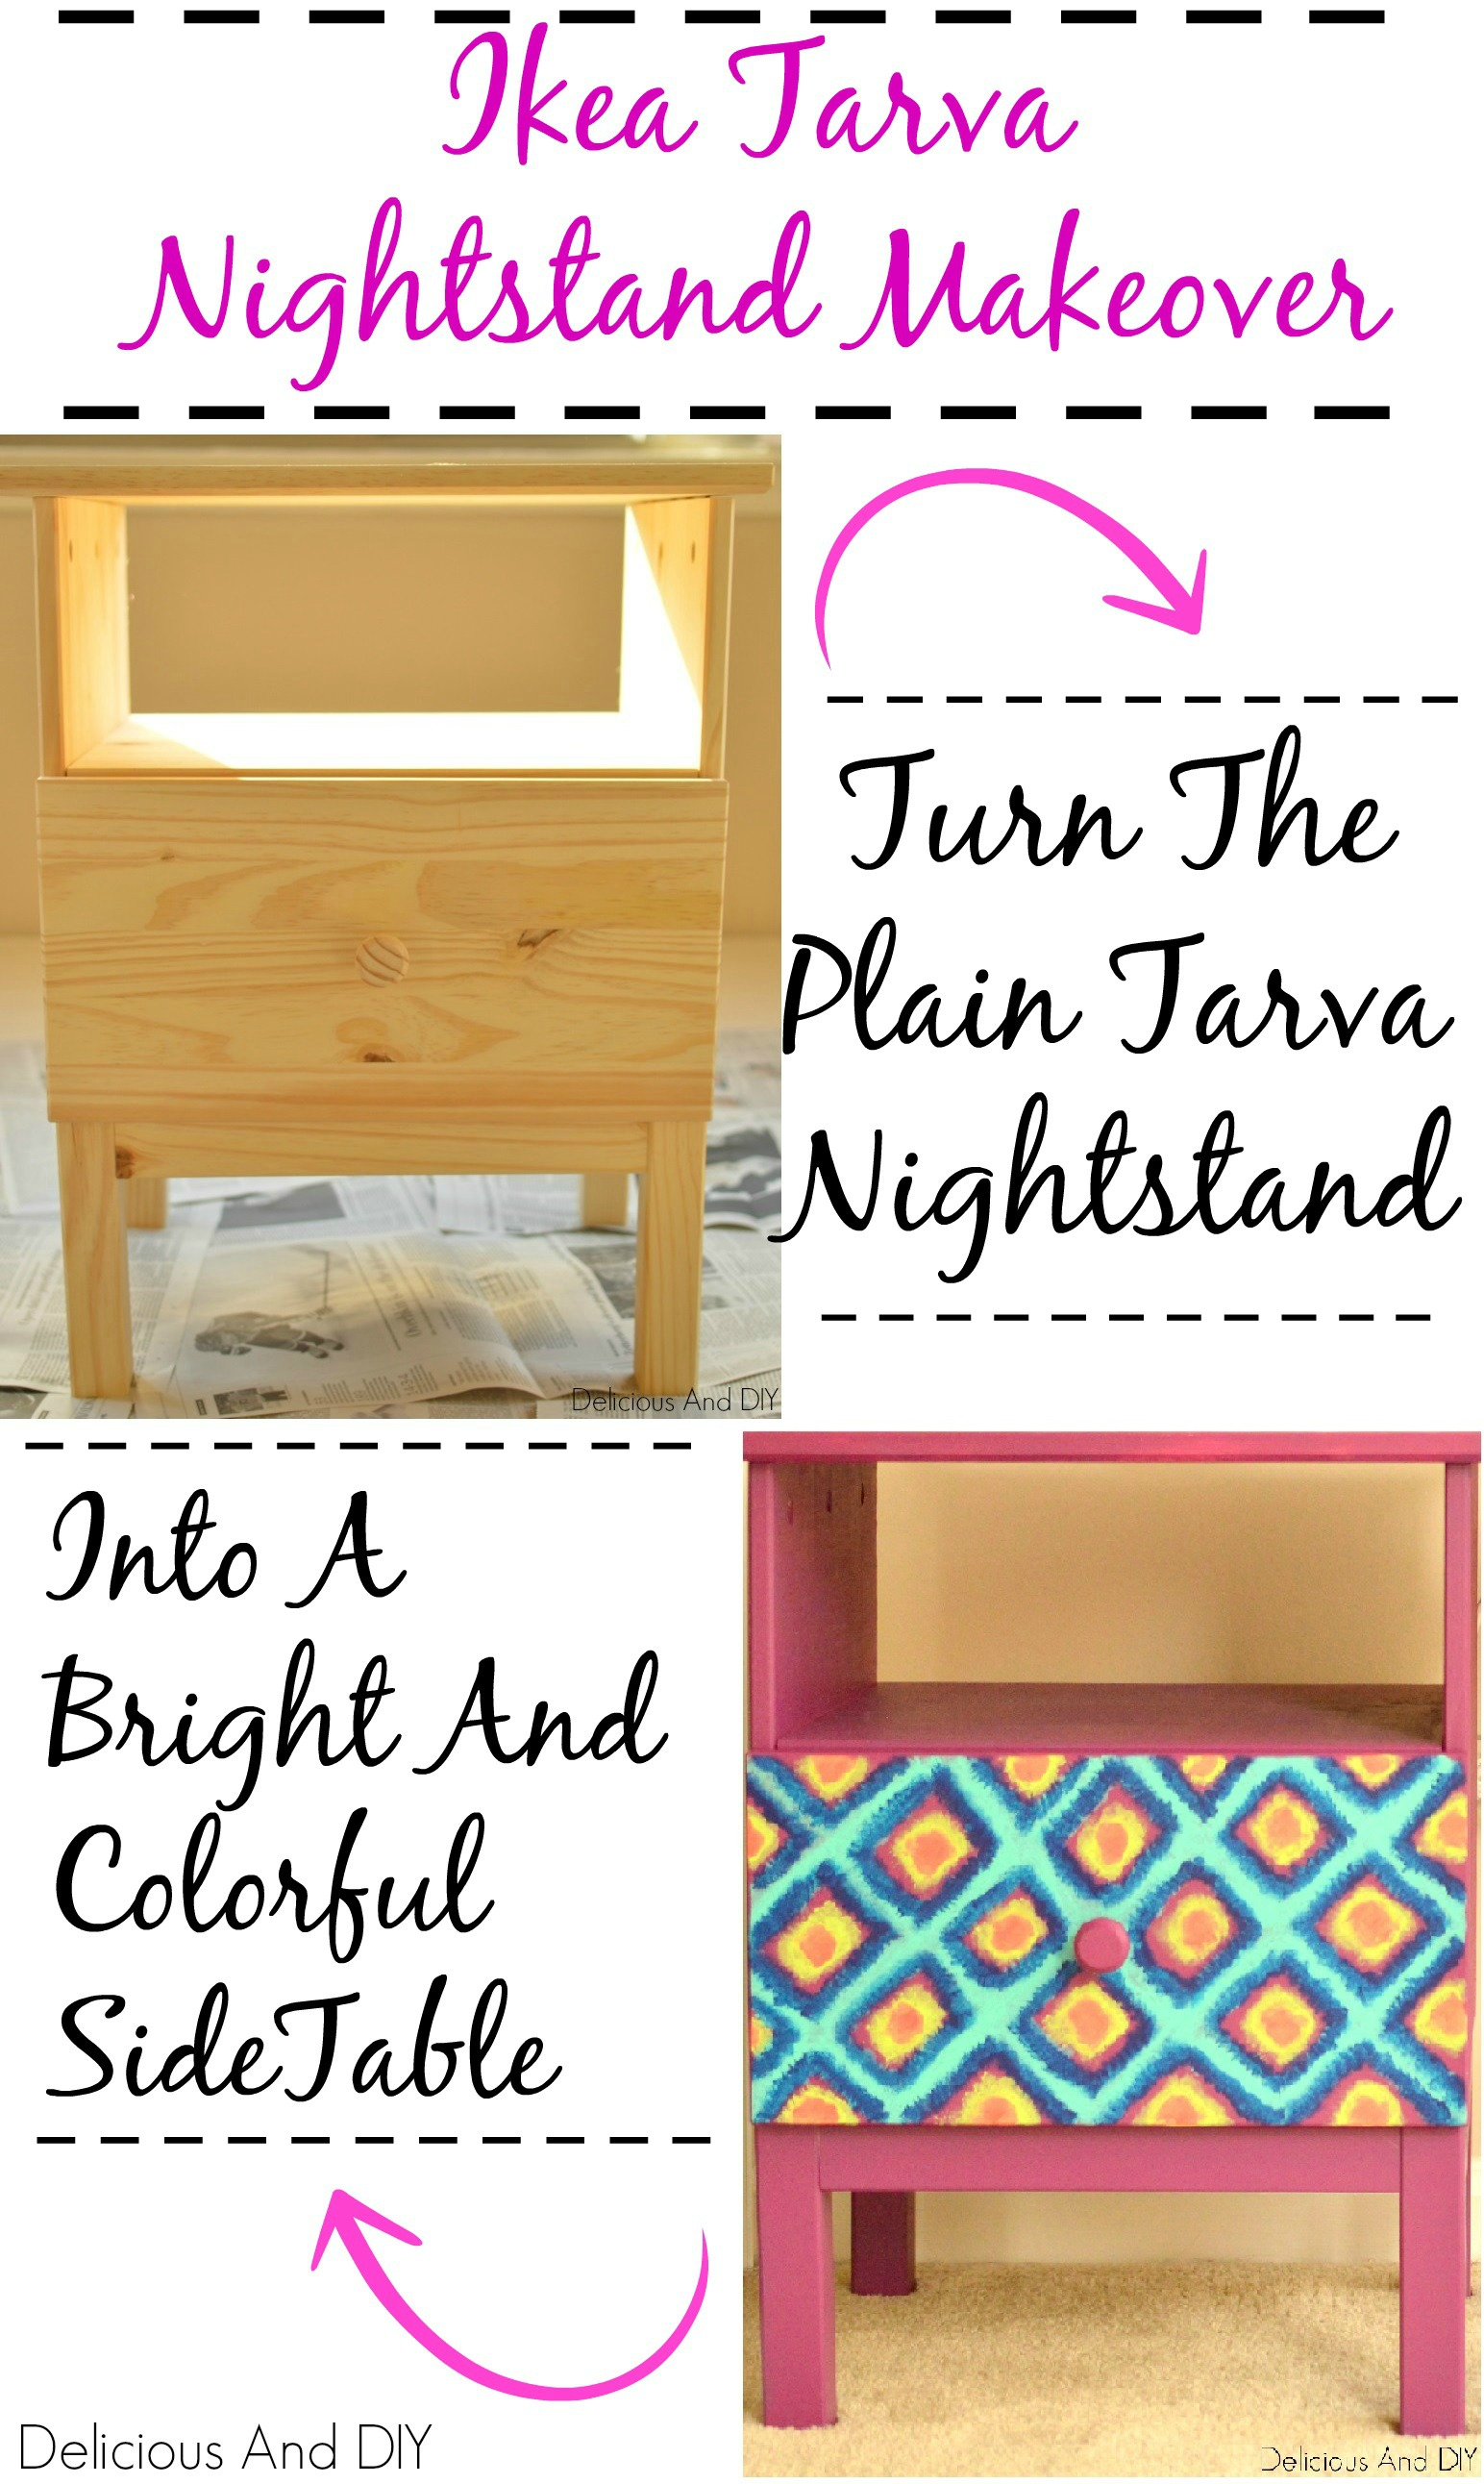 IKEA Tarva Nightstand Makeover Delicious And DIY